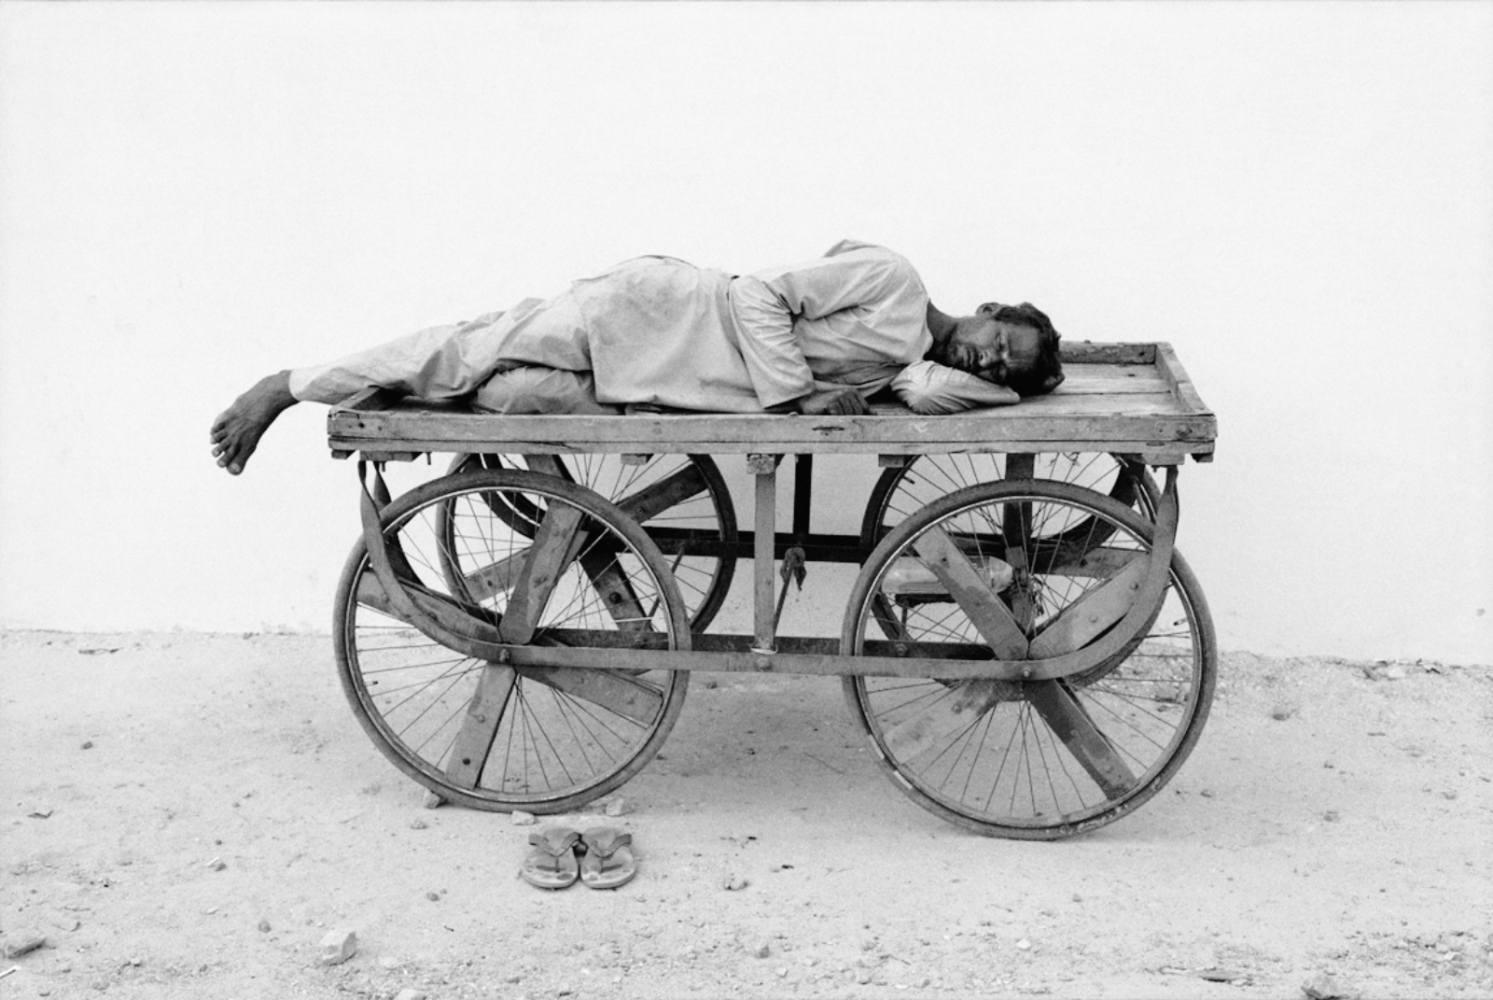 Man Asleep on Cart, Pushkar, India, November 2003